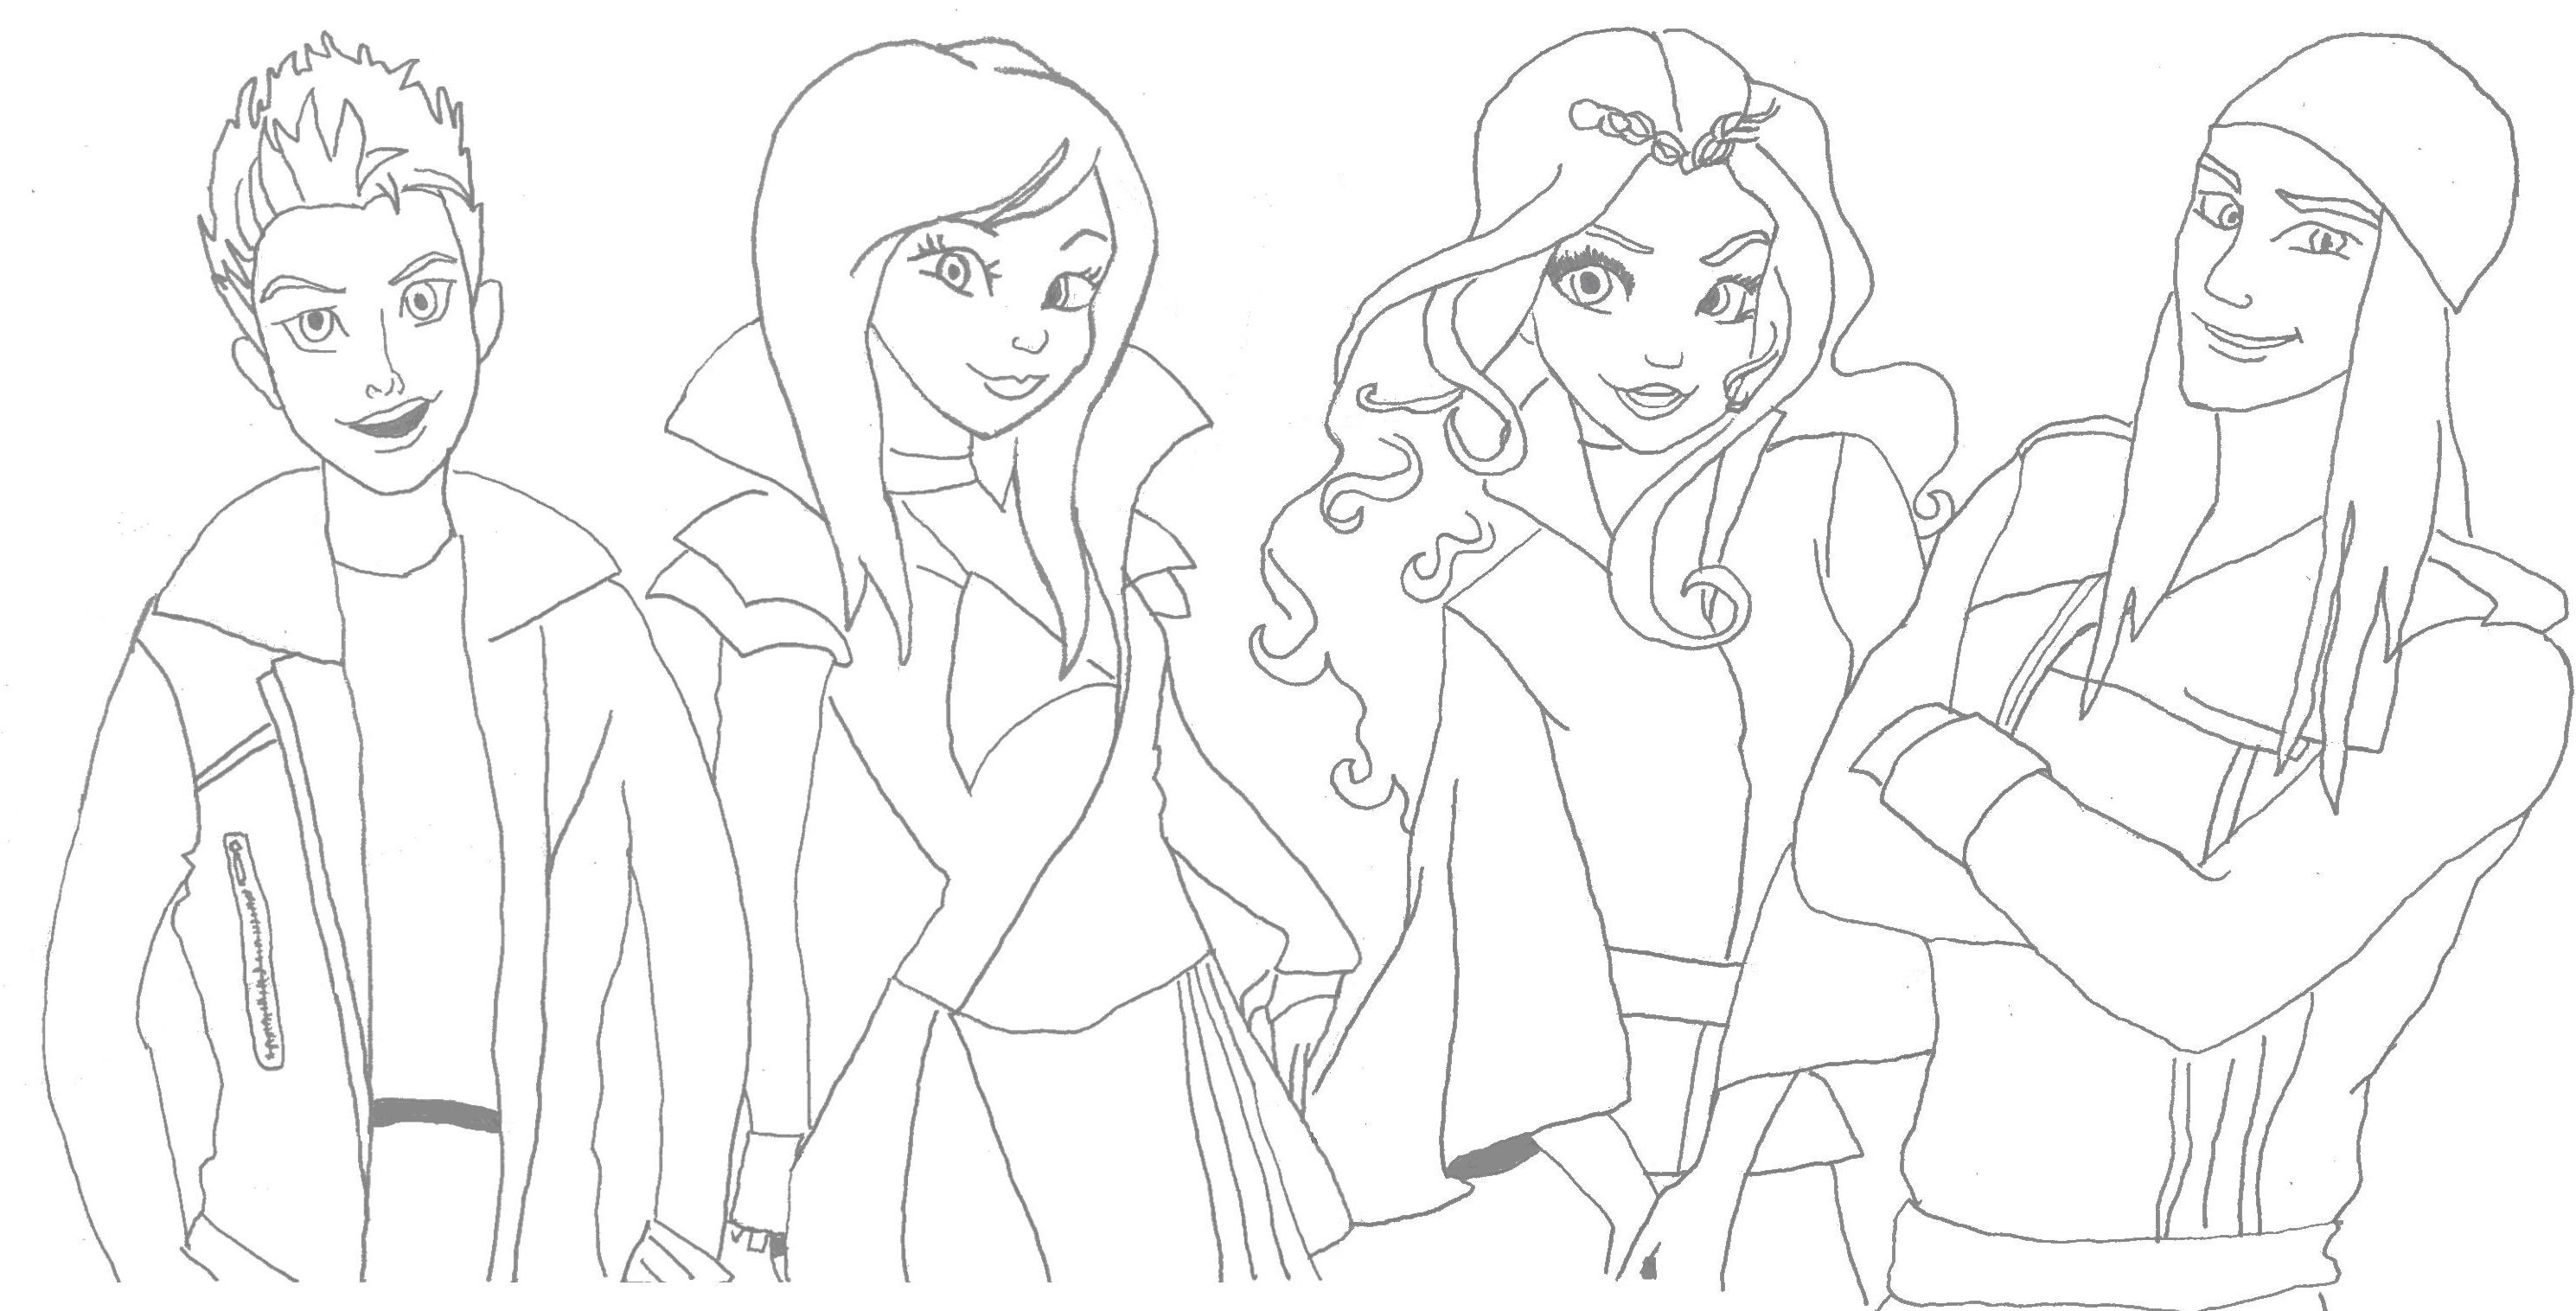 Awesome Disney Descendants Coloring Sheet. This Is My First Pin. I Could Not Find  ANY Coloring Sheets For Descendants So I Traced A Photo. Iu0027m Not An Artist.